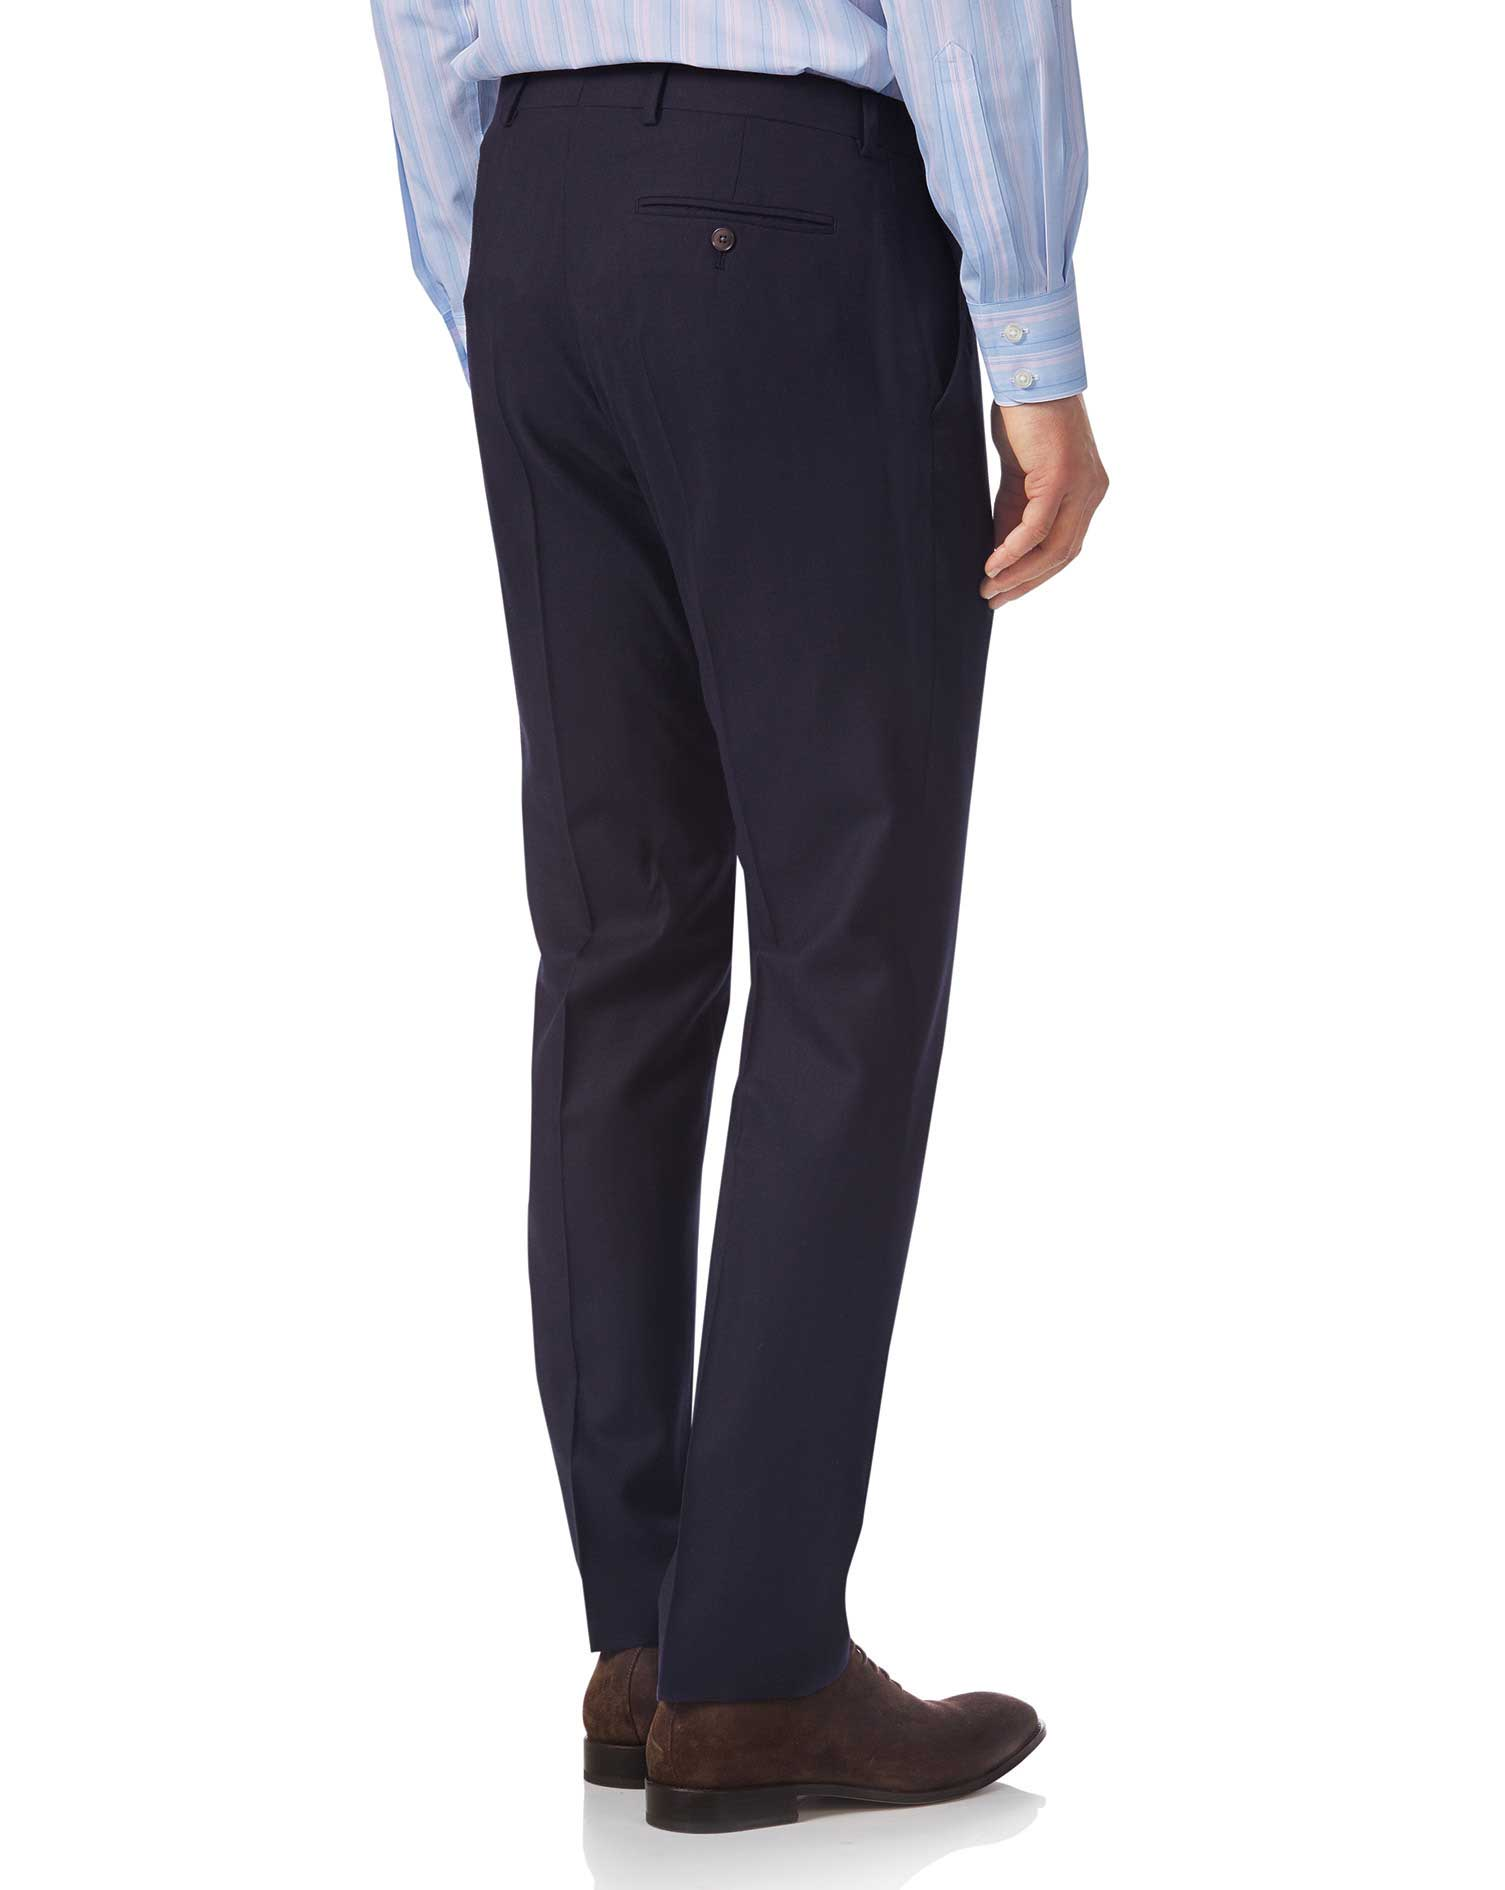 Navy slim fit British luxury suit pants